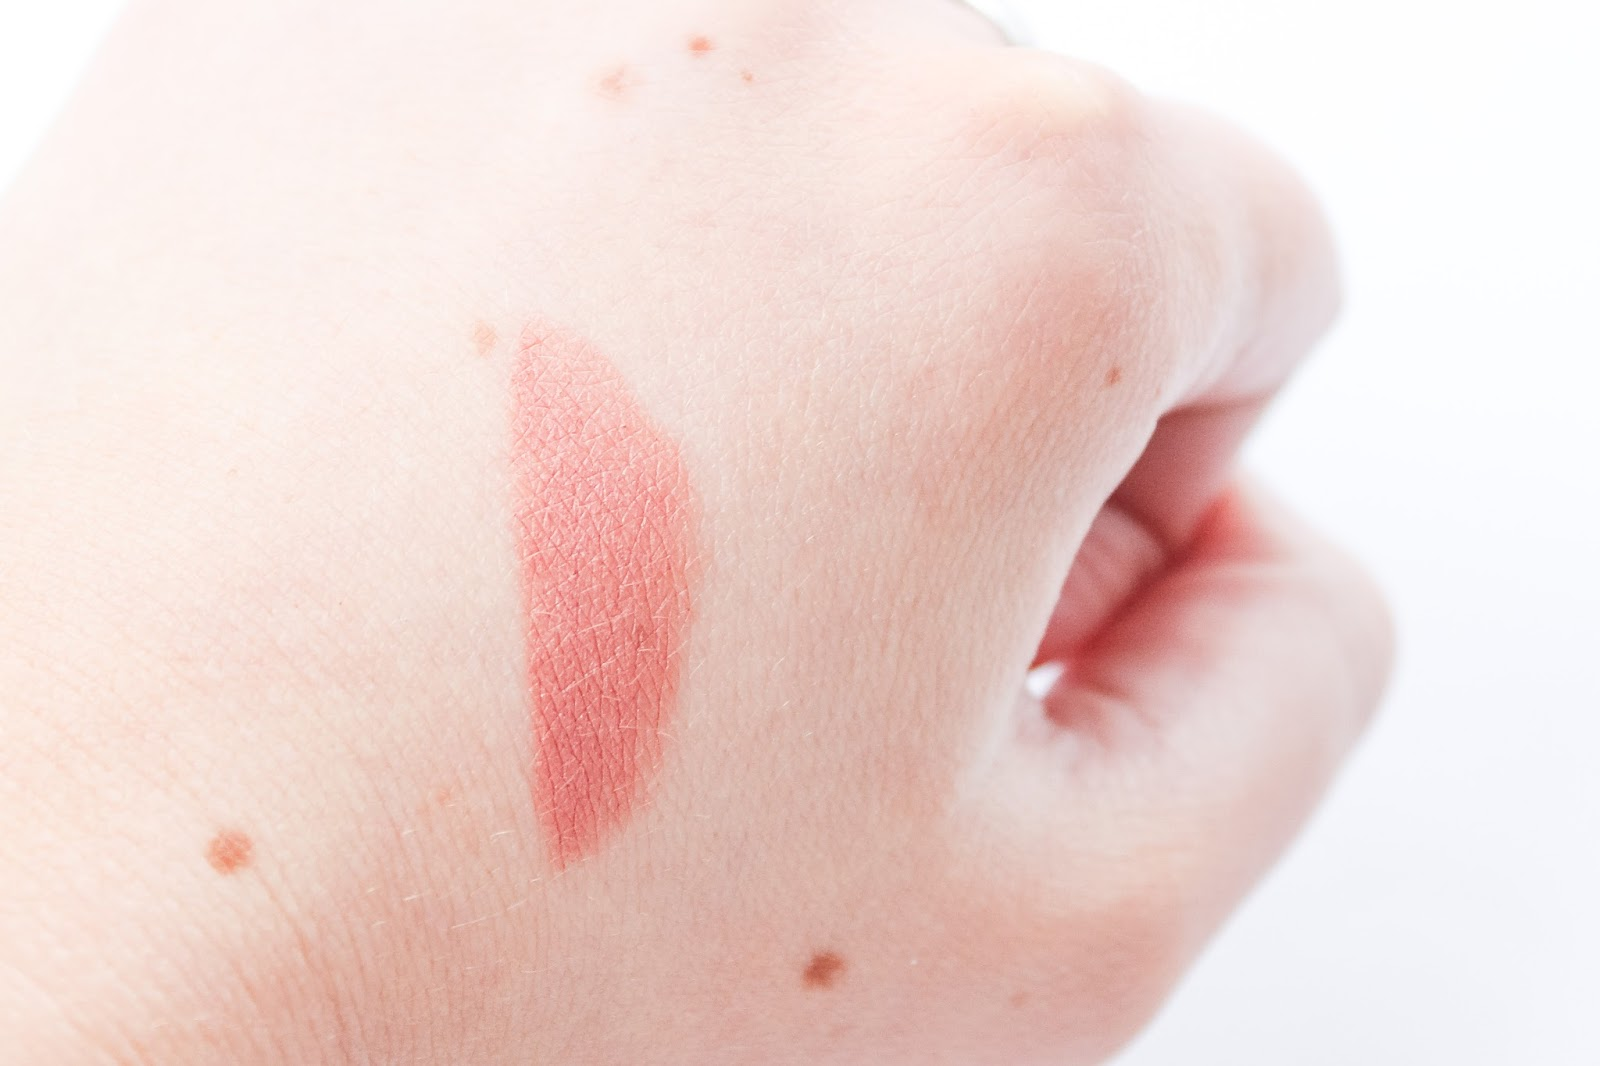 Soap & Glory Sexy Motherpucker Matte Lipstick in Super Nude